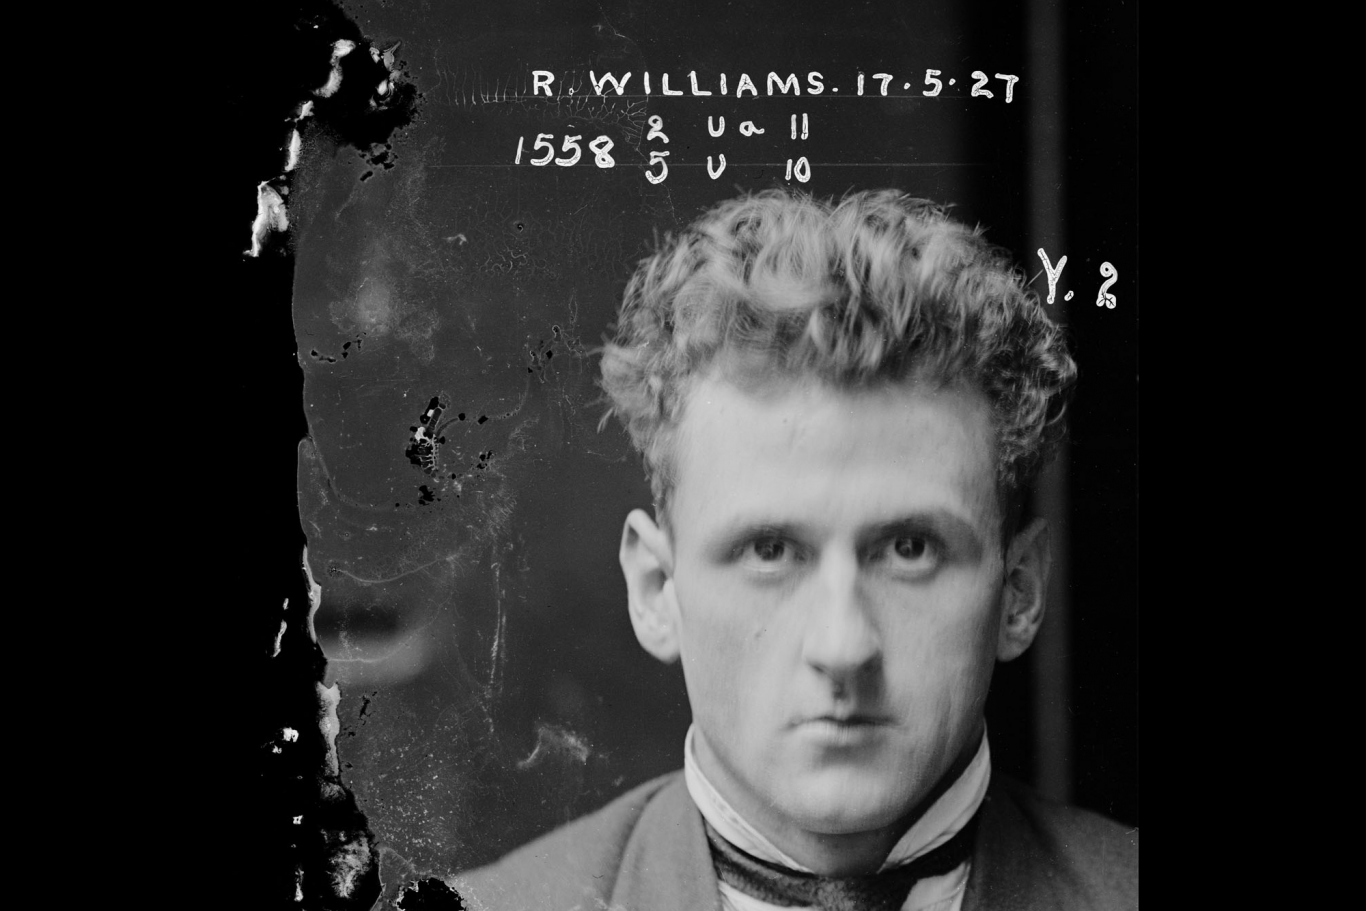 Black and white photo of man's face with white writing on negative visible to one side.